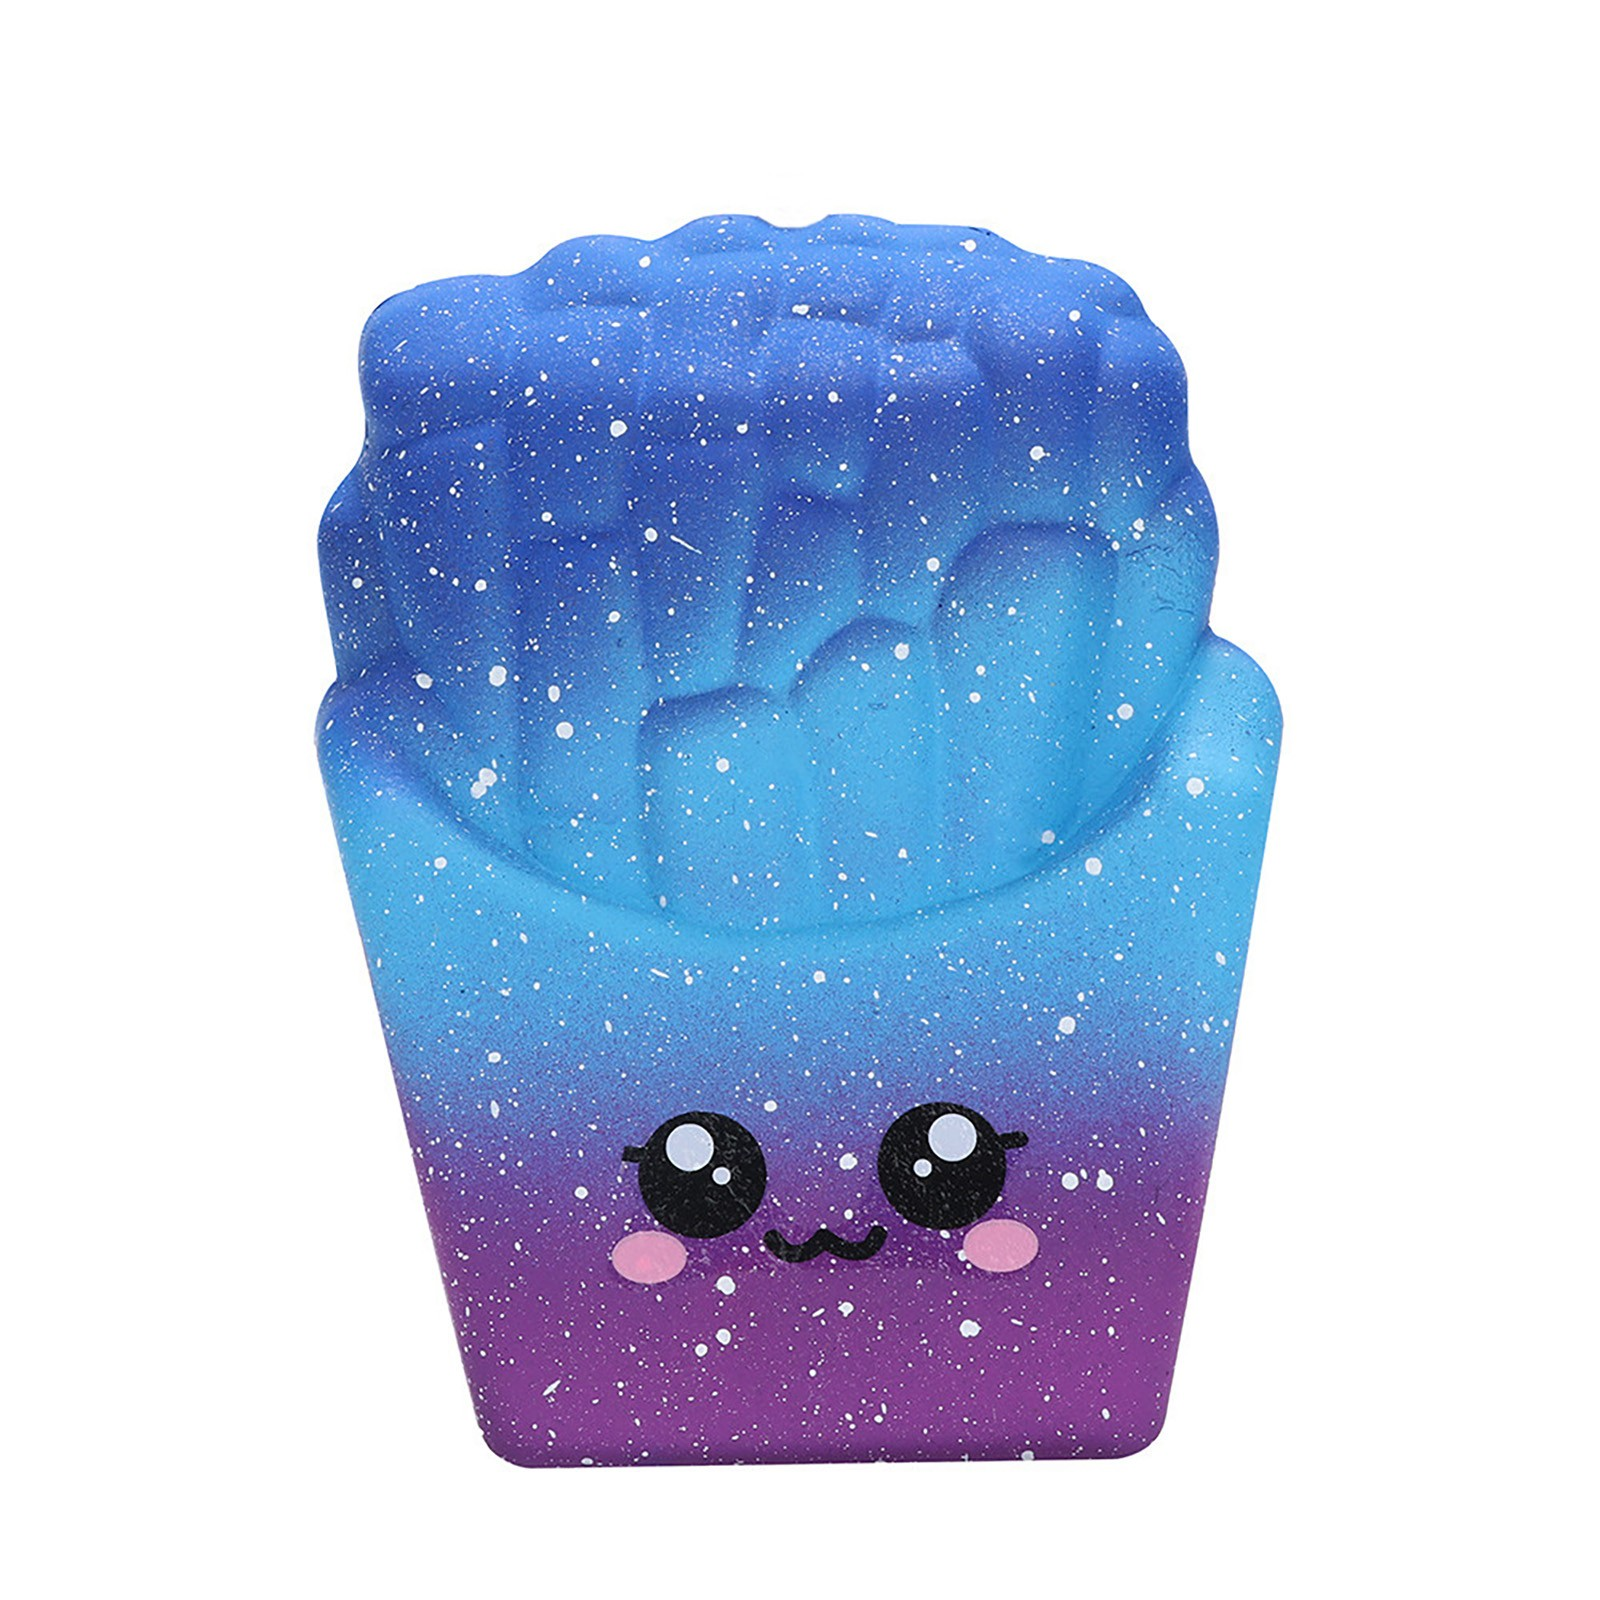 8cm Fidget Toys Galaxy French Fries Squishies Slow Rising Squeeze Scented Stress Relieve Decompression Slow Rebound Squeeze Toy img2